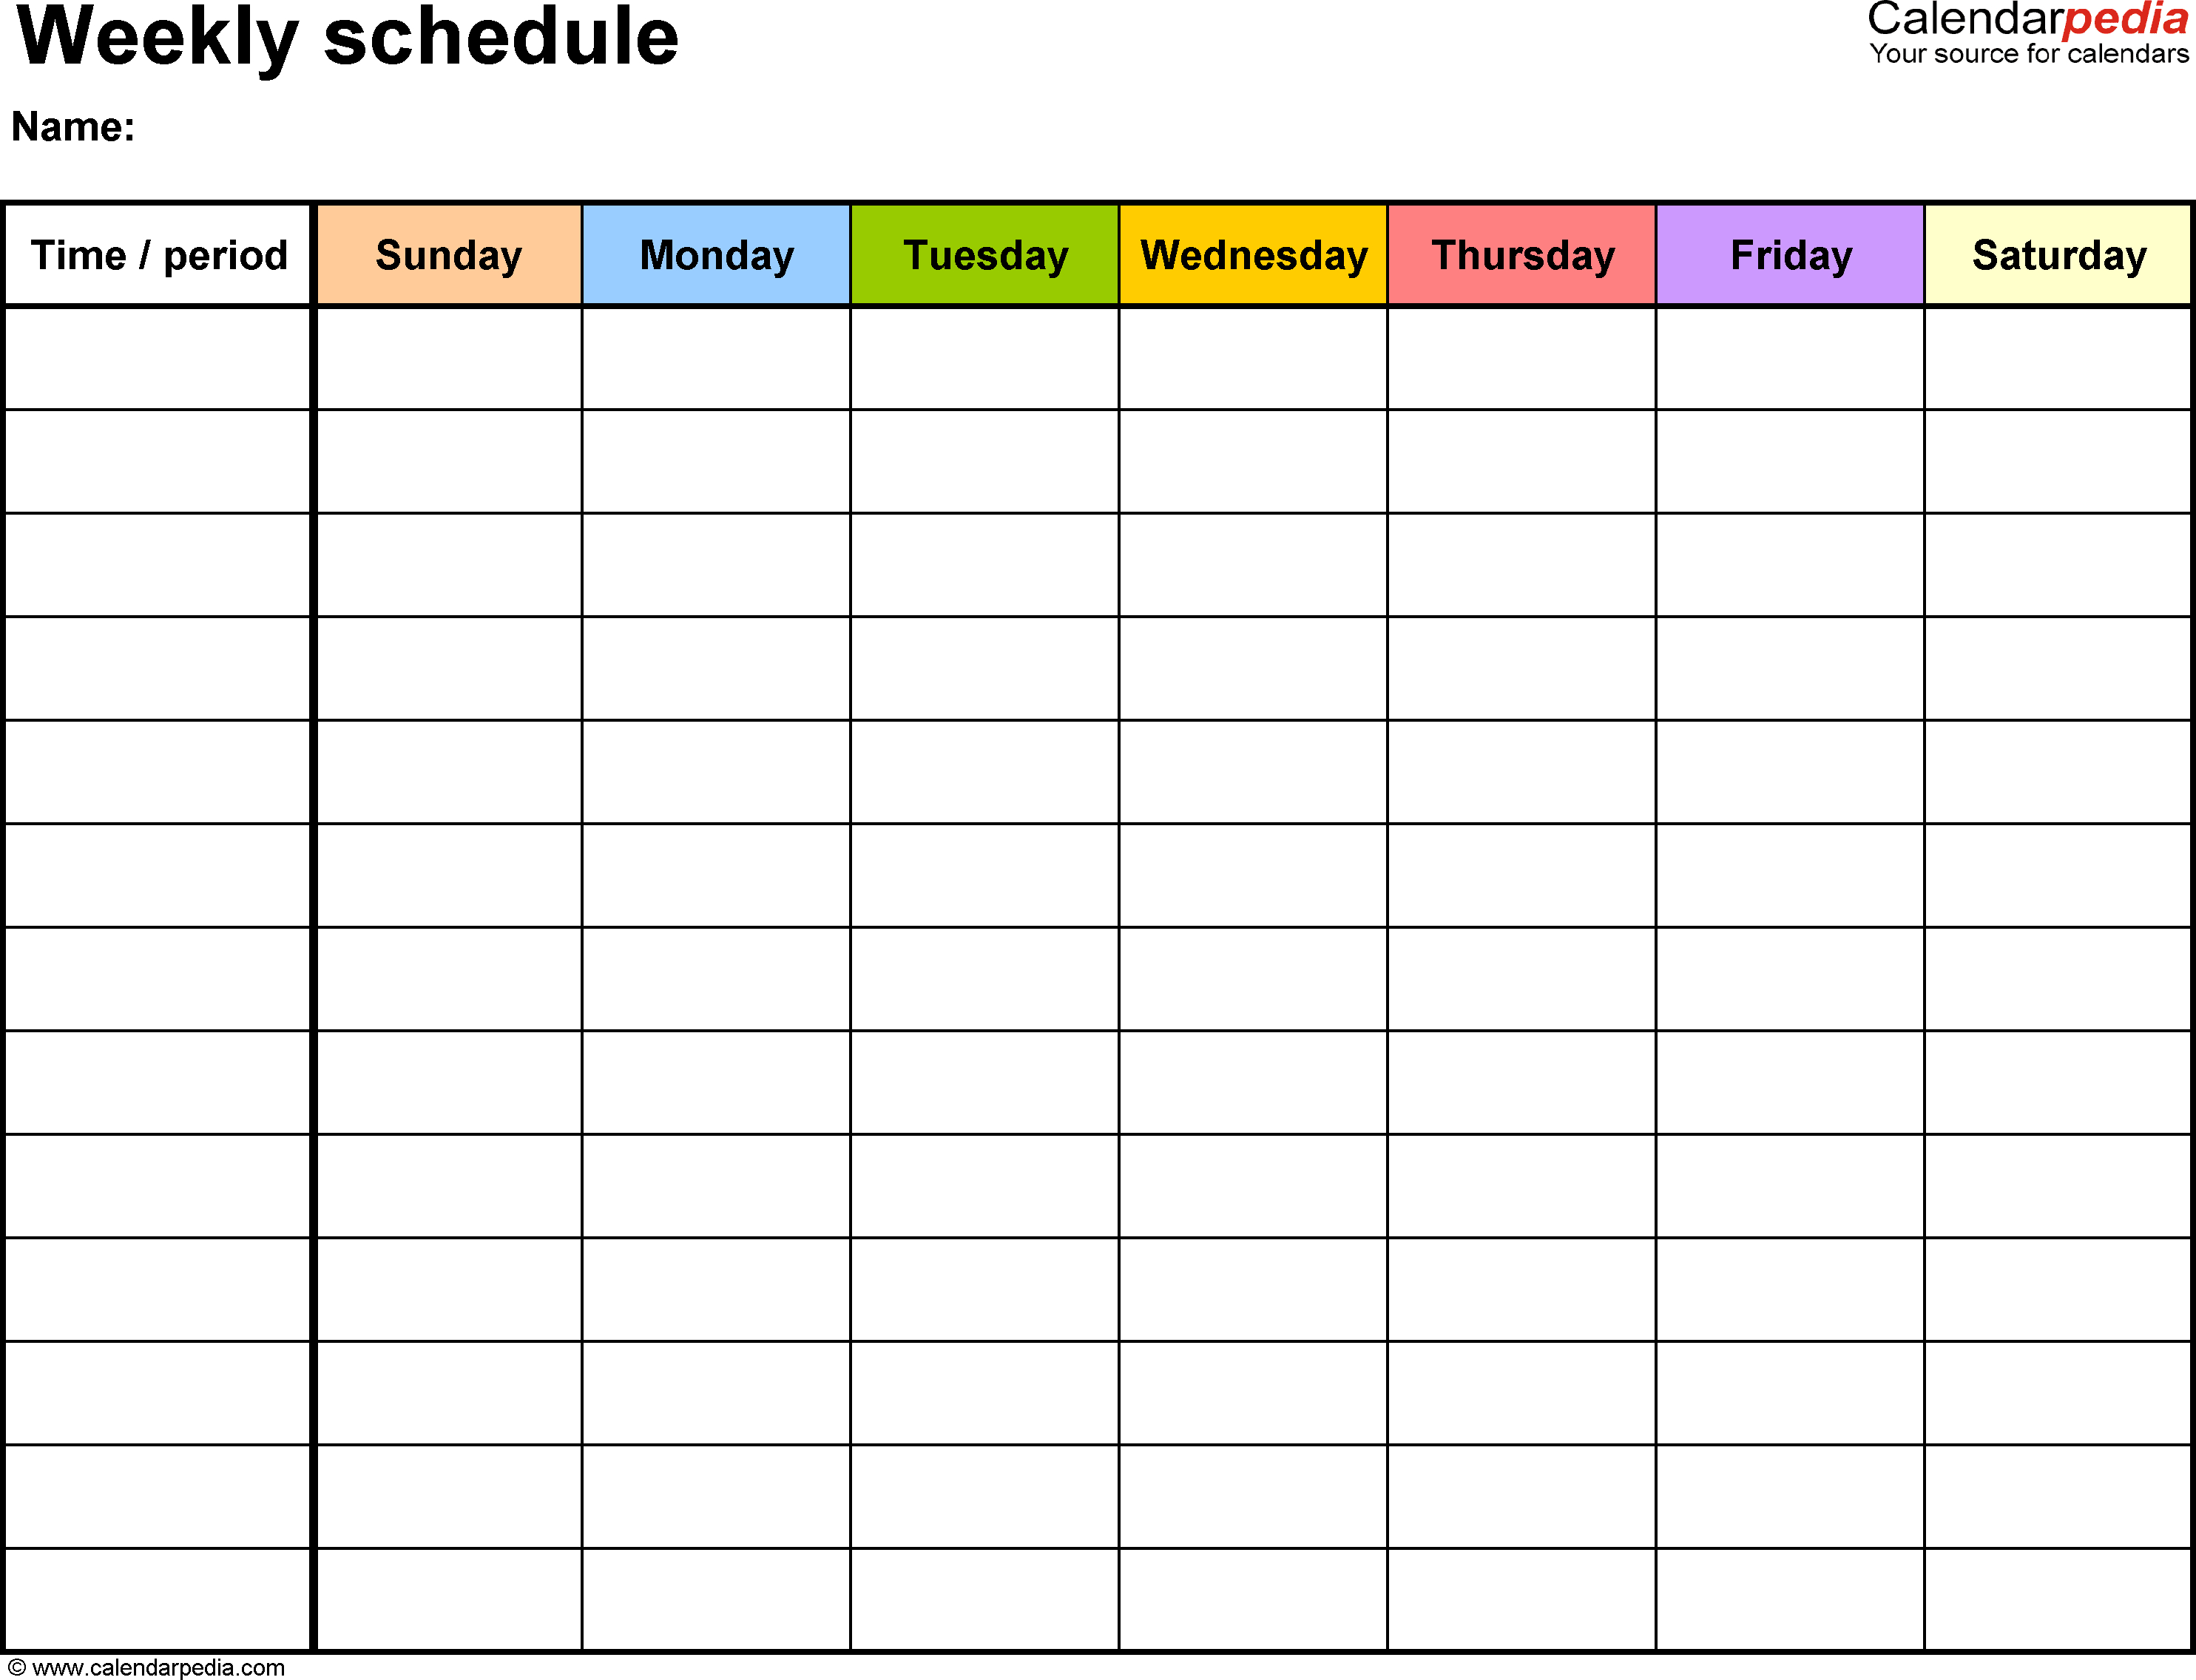 Free Weekly Schedule Templates For Excel - 18 Templates with Monday Through Friday Calendar Template January Printable